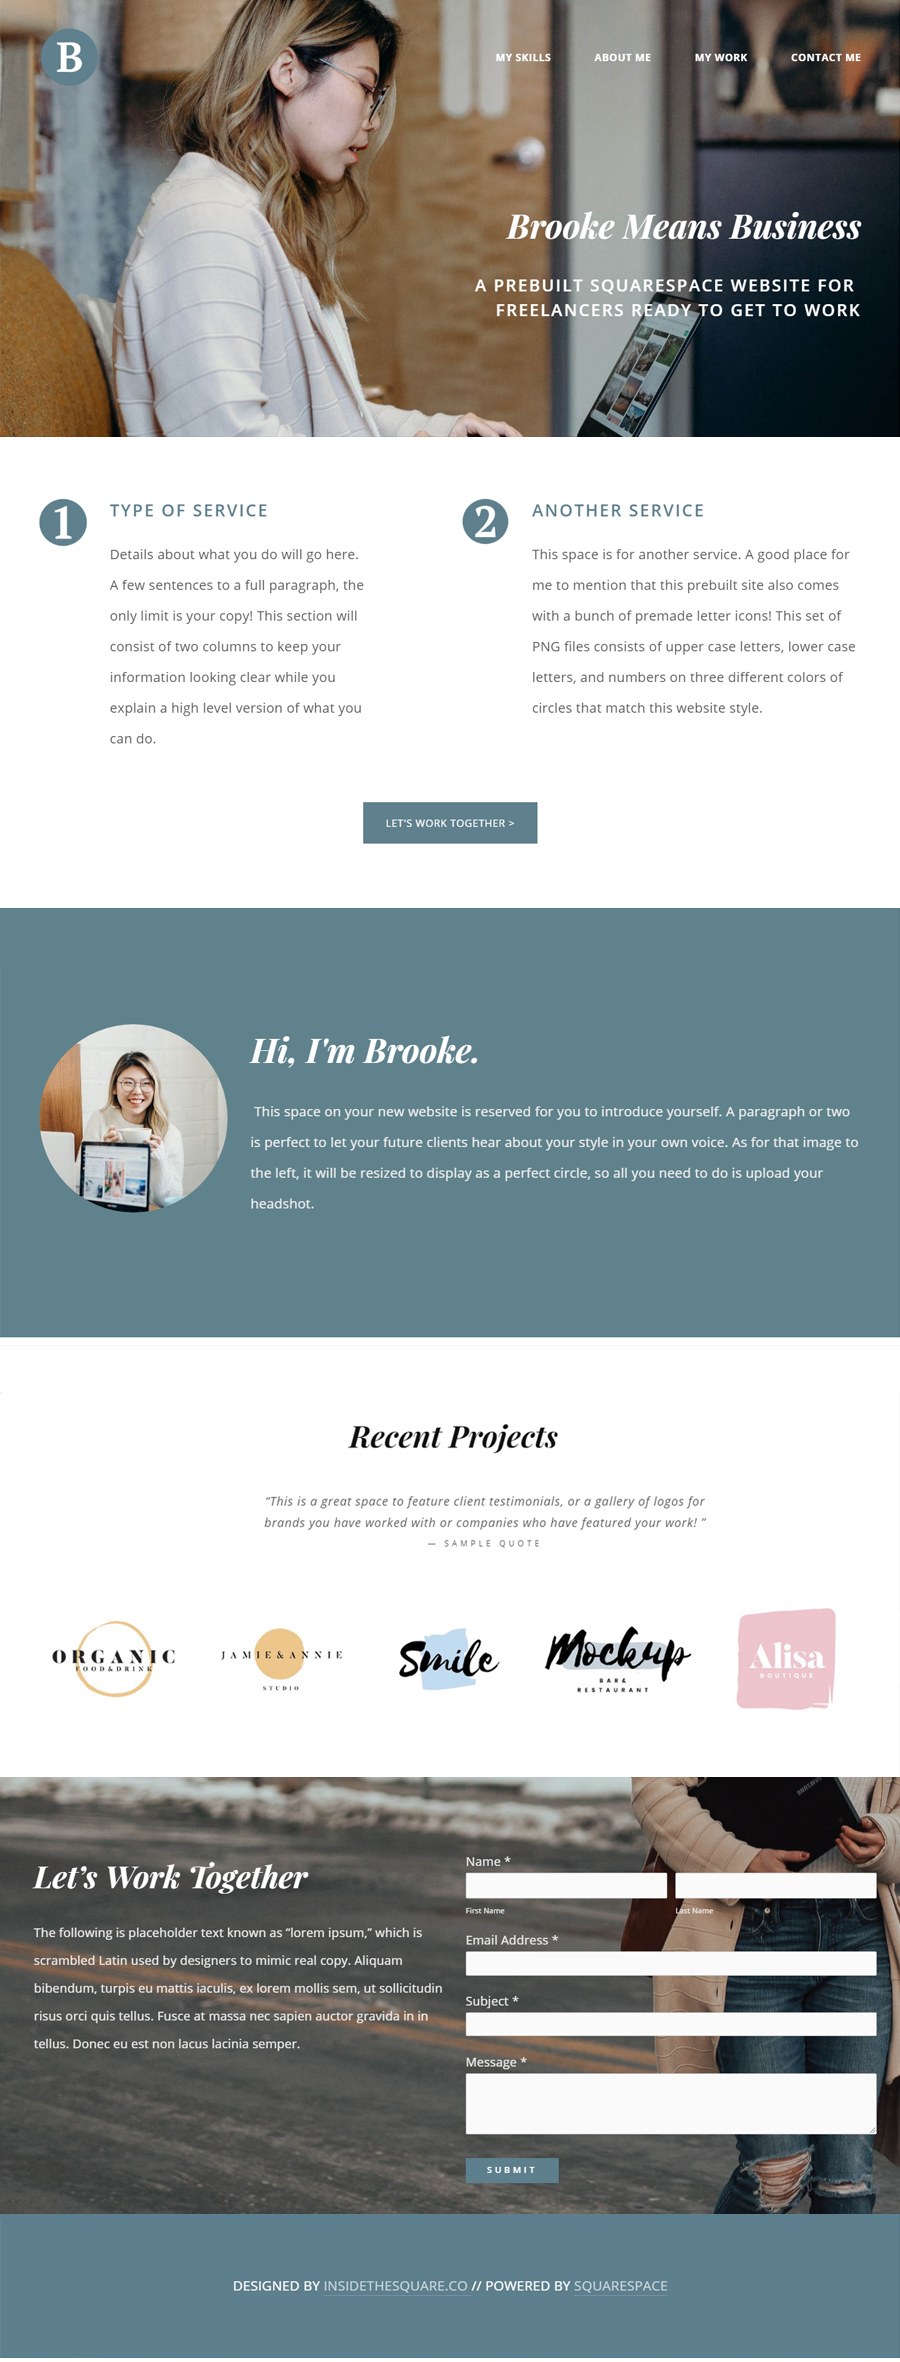 brooke means business - a website template for freelancers .jpg